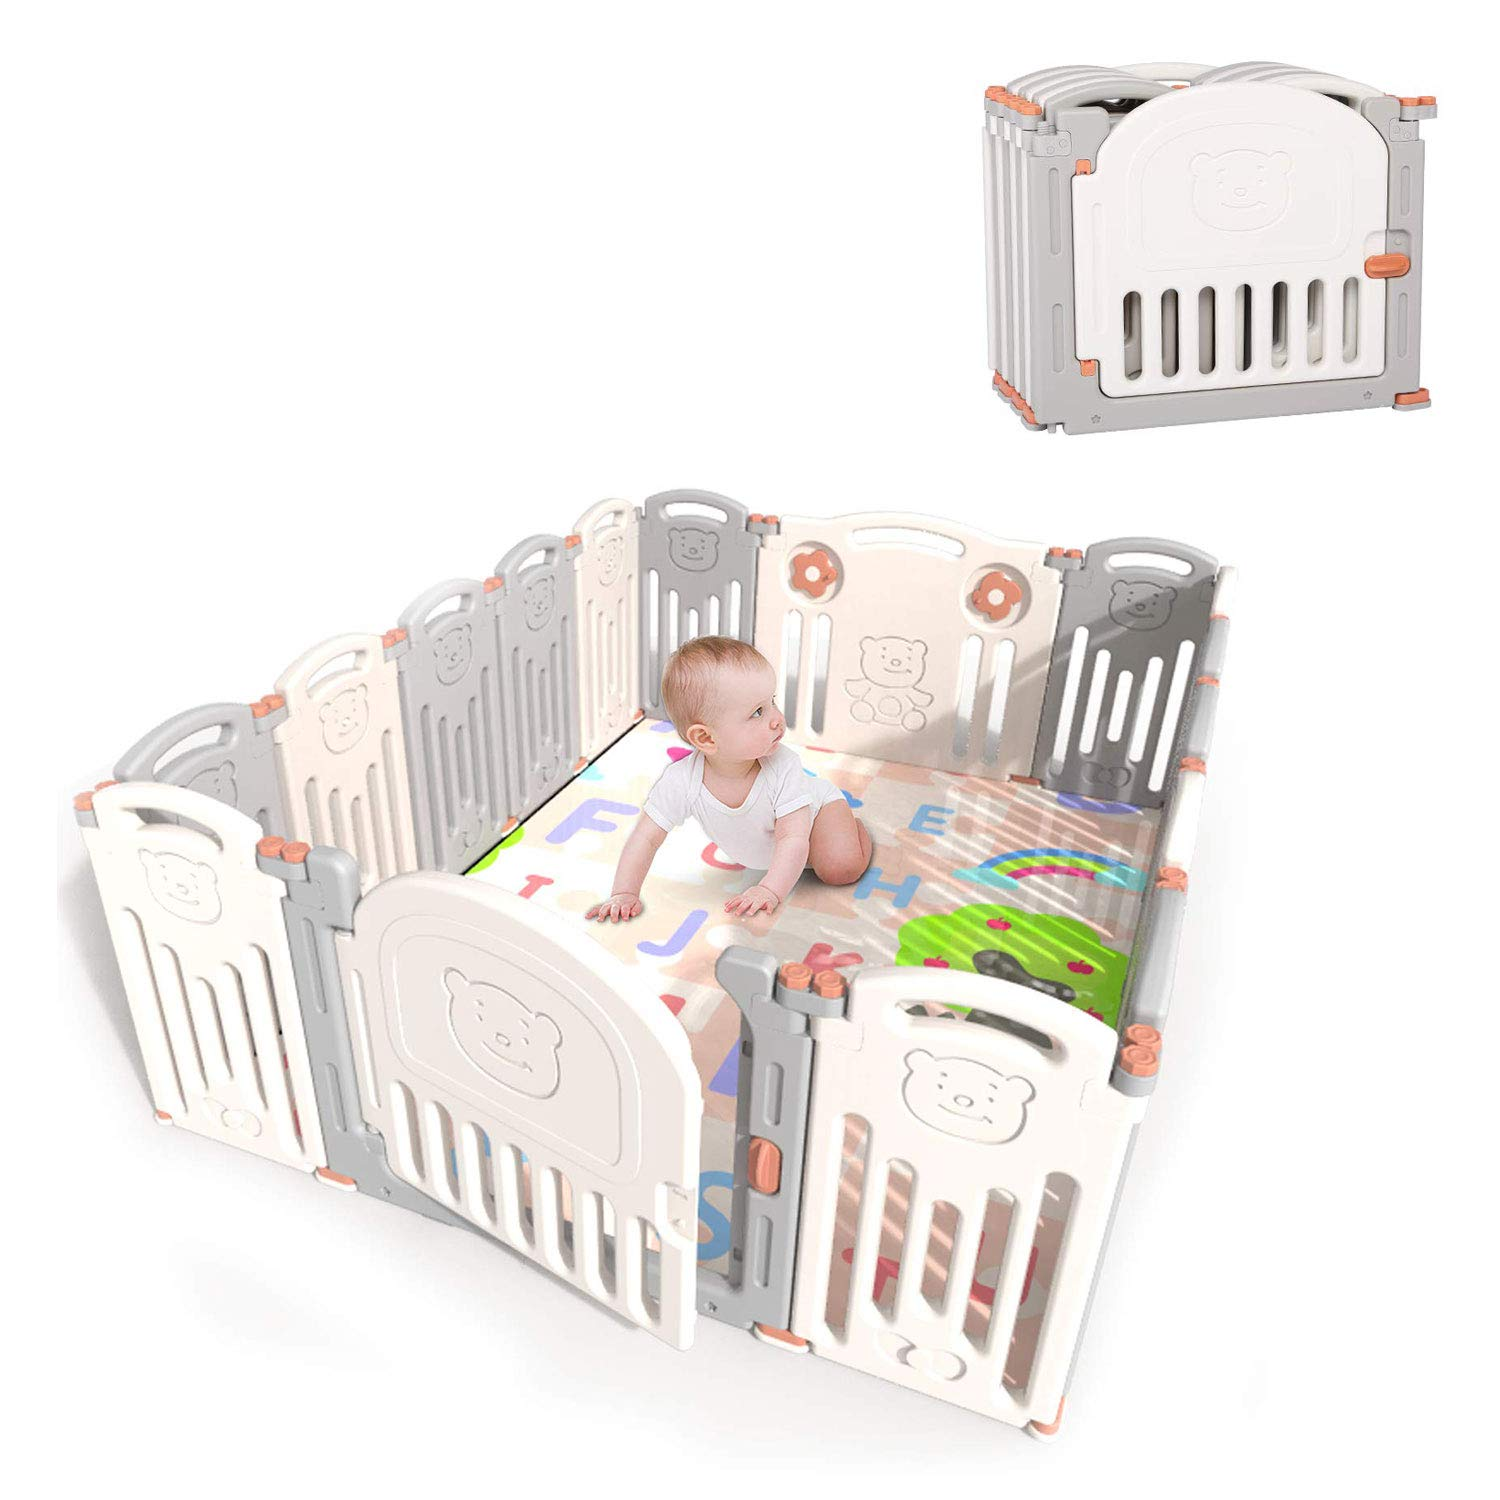 Kidsclub Baby 16 Panel Playpen Activity Centre Safety Play Yard Foldable Portable HDPE Indoor Outdoor Playards Fence